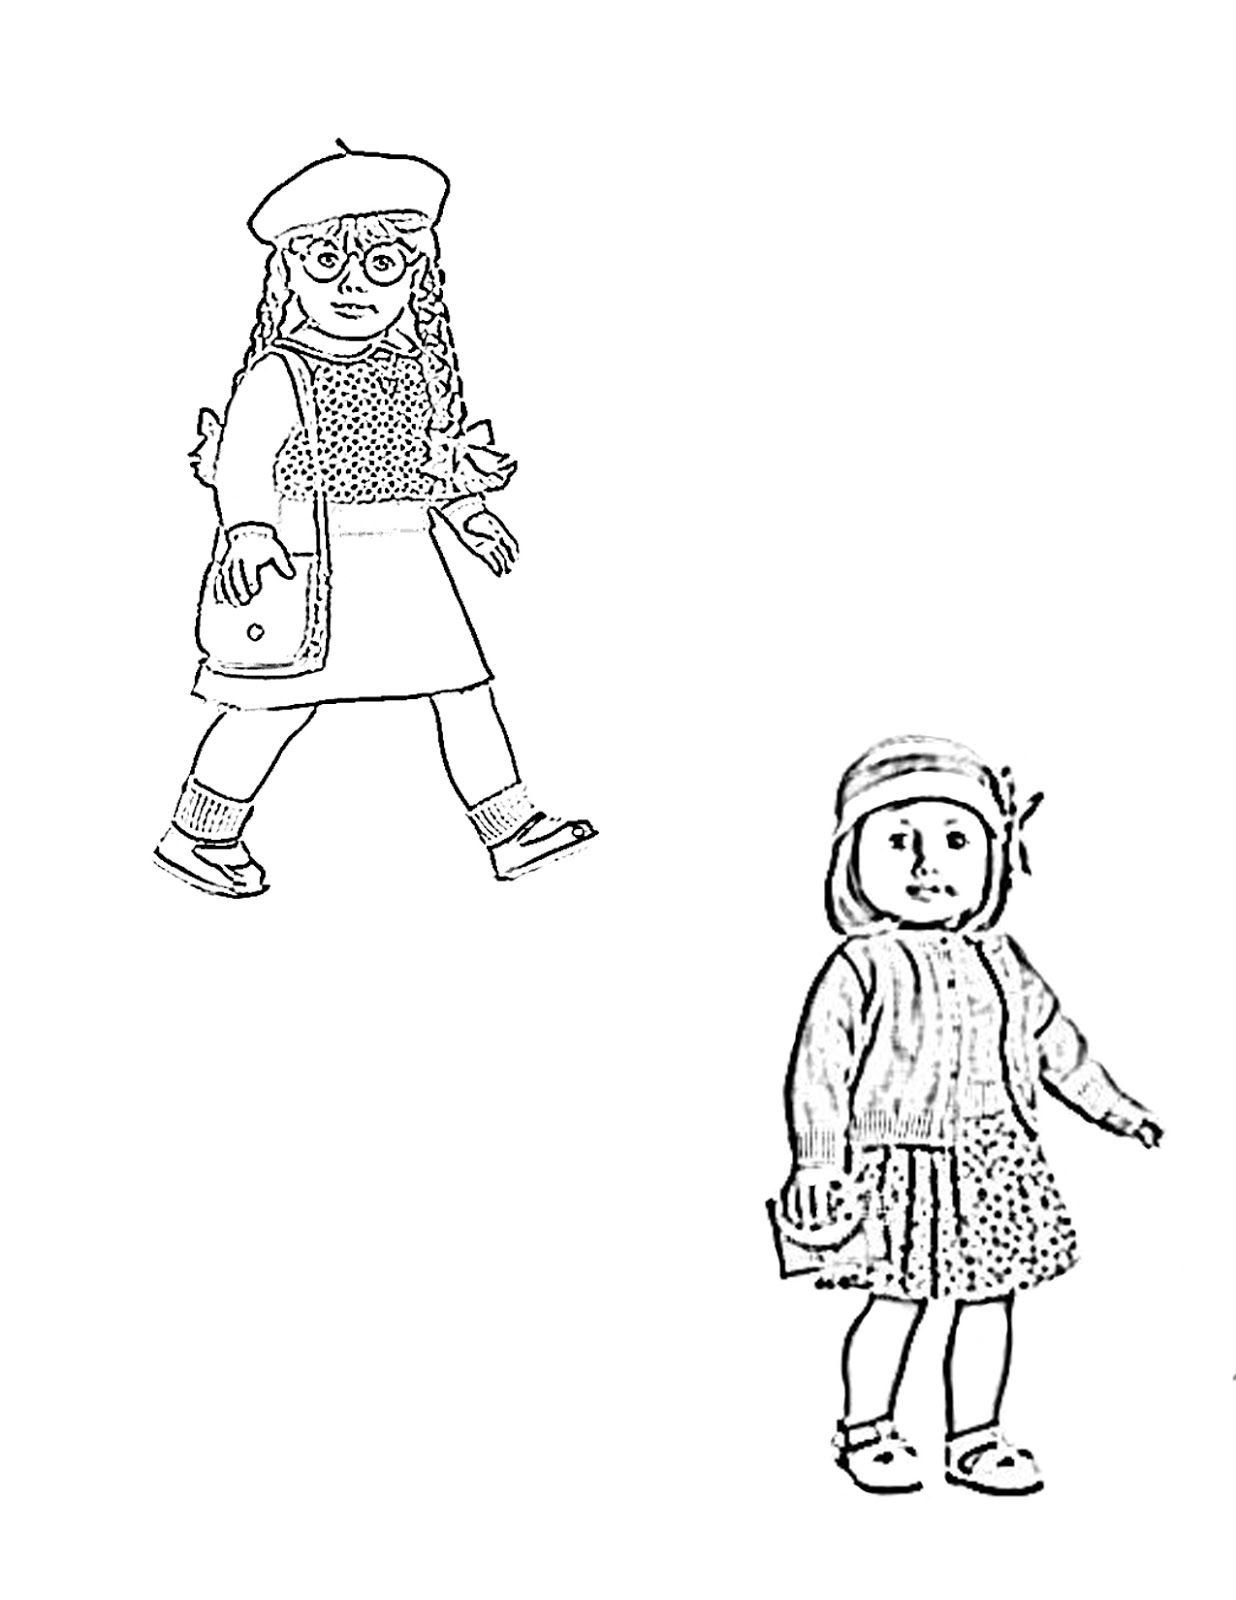 american girl coloring page.jpg 1,236×1,600 pixels | Summer camps ...